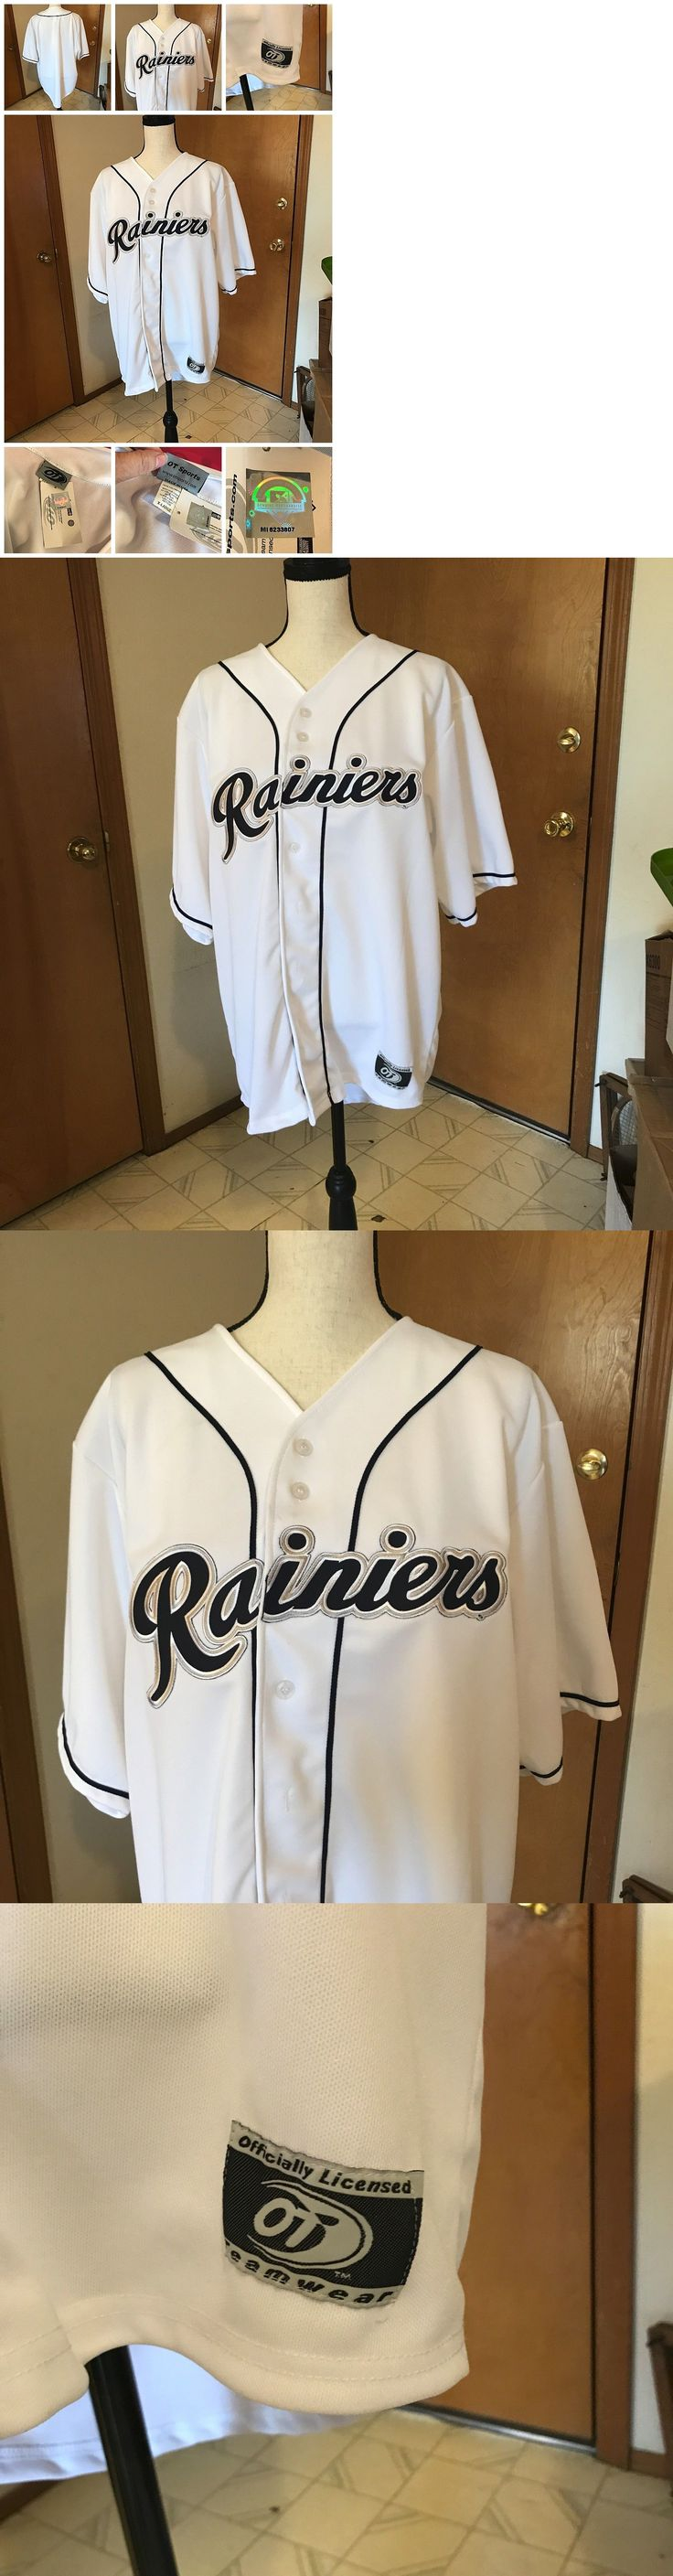 Baseball-Minors 24441: Ot Officially Licensed Minor League Baseball Jersey Tacoma Rainiers Nwt Size Xl -> BUY IT NOW ONLY: $49.99 on eBay!